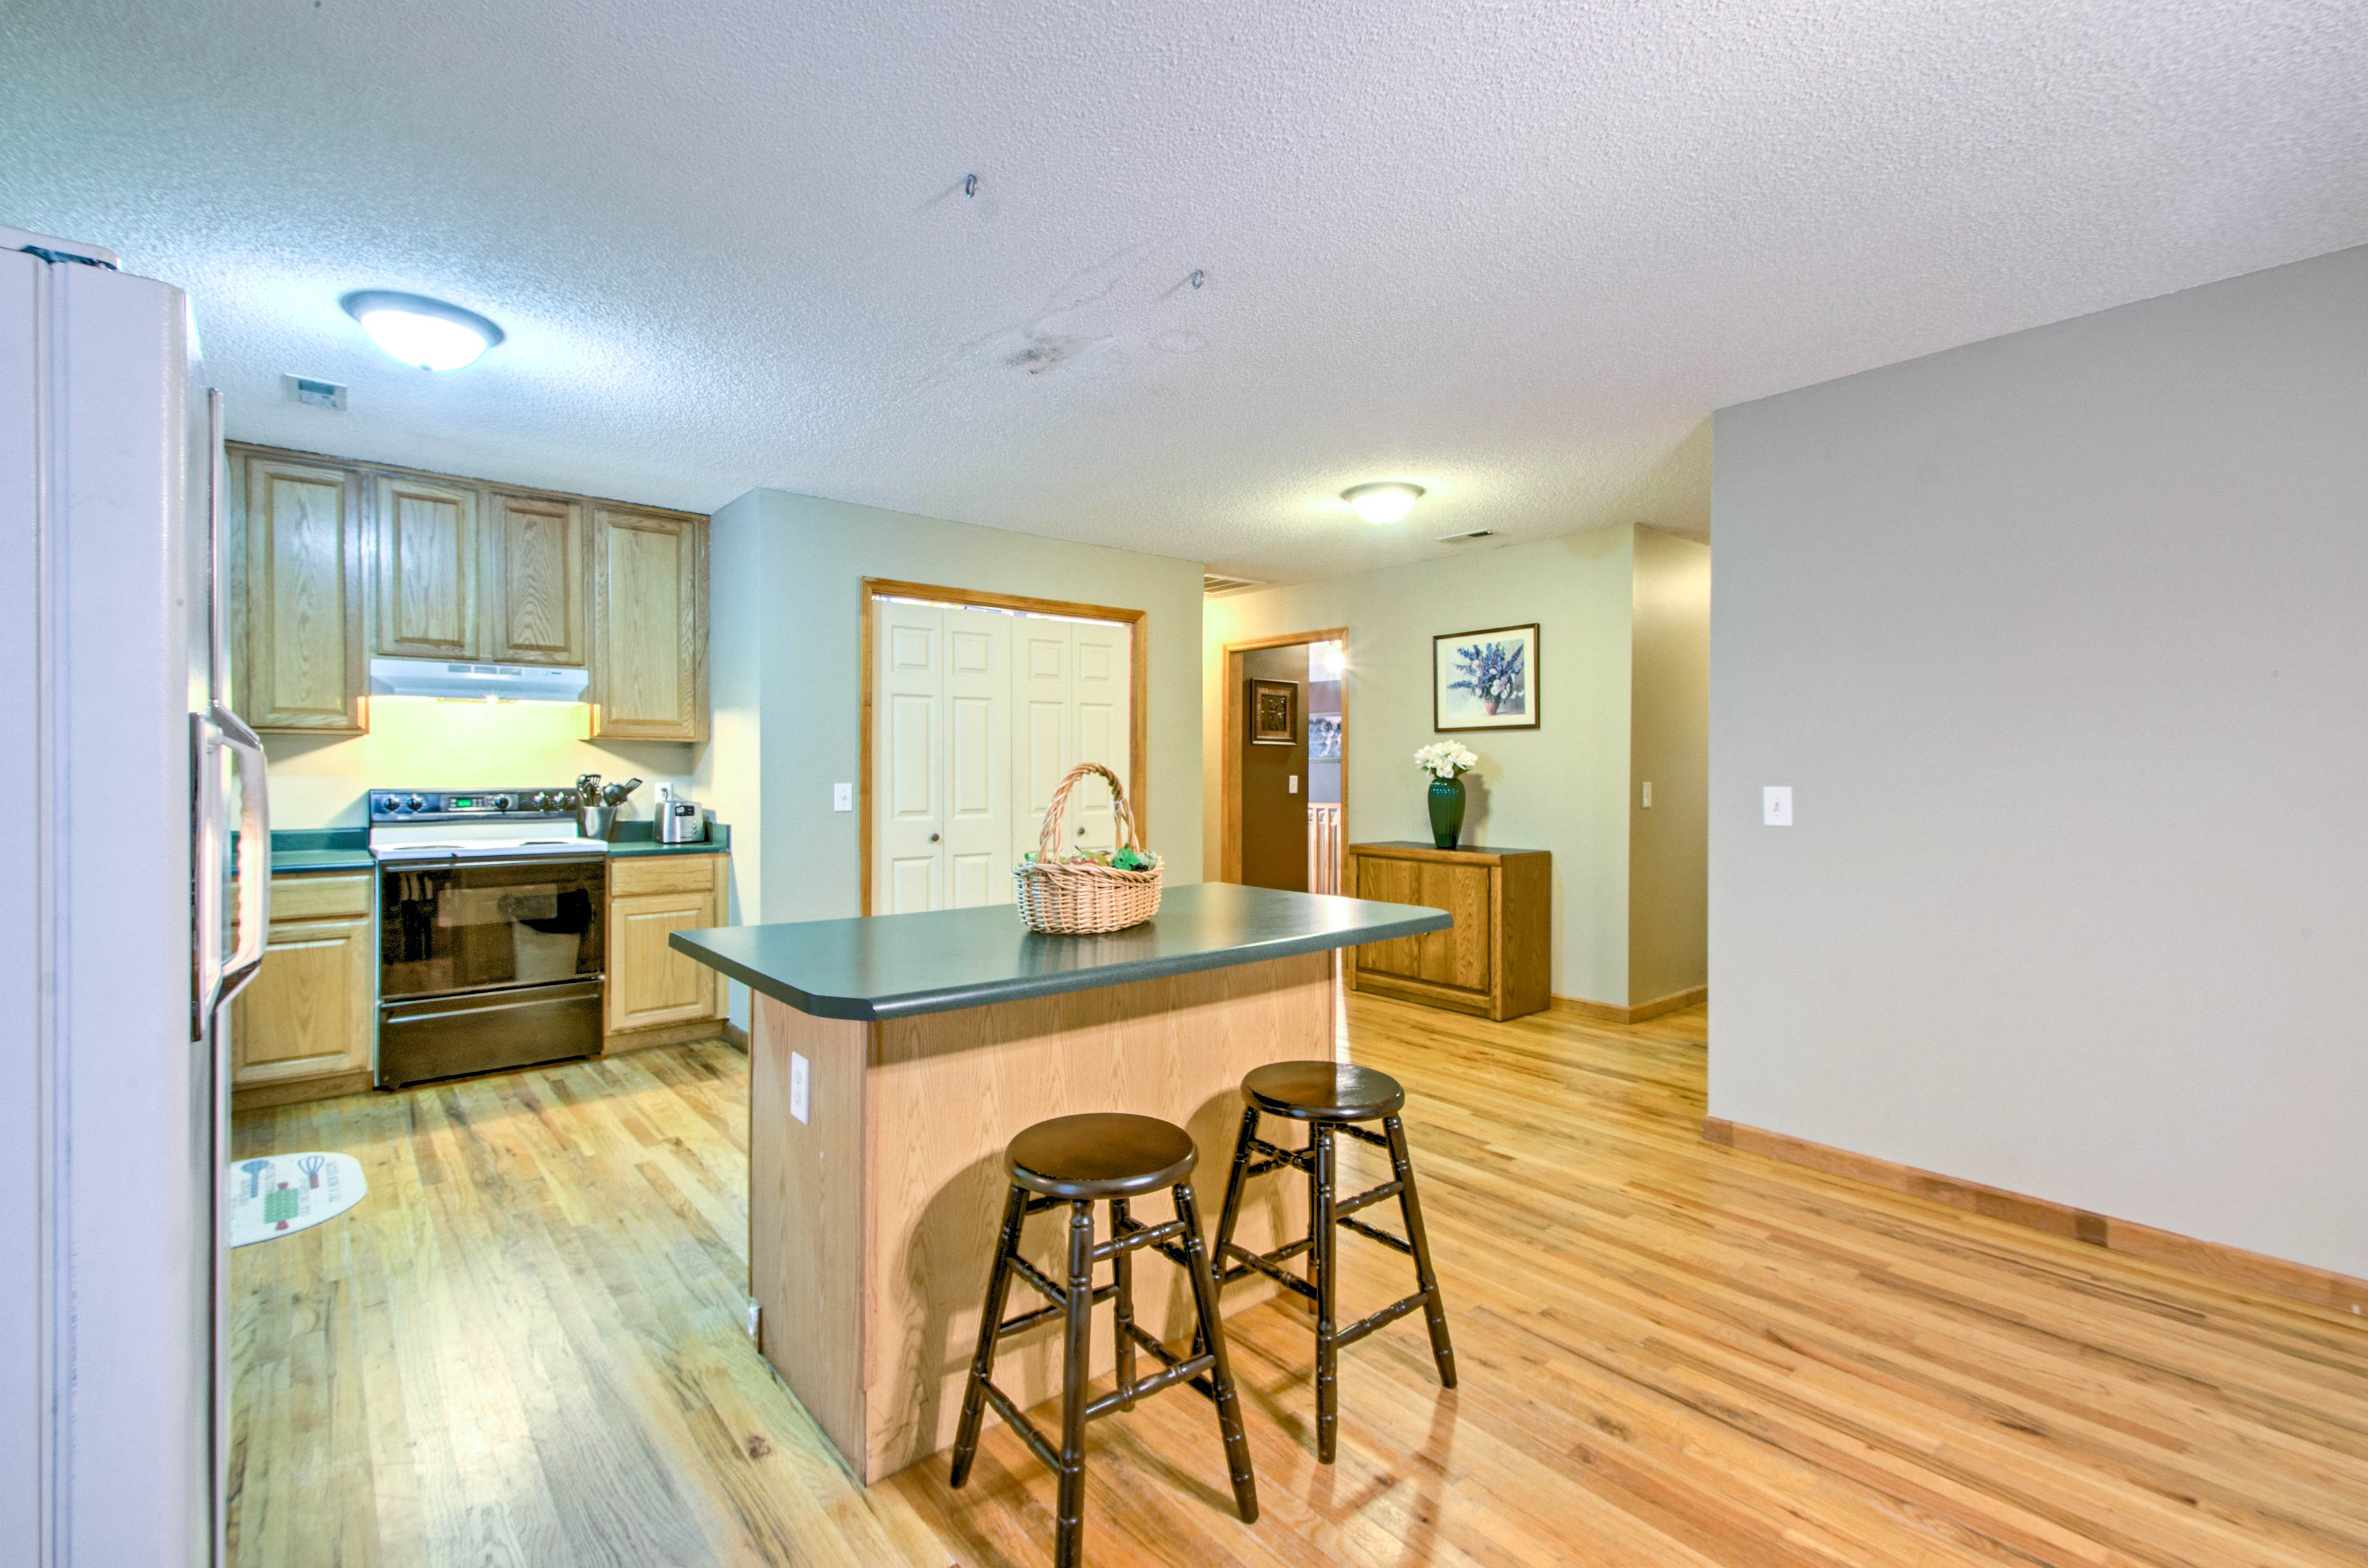 Hardwood floors are featured throughout the 1,800-square-foot interior.